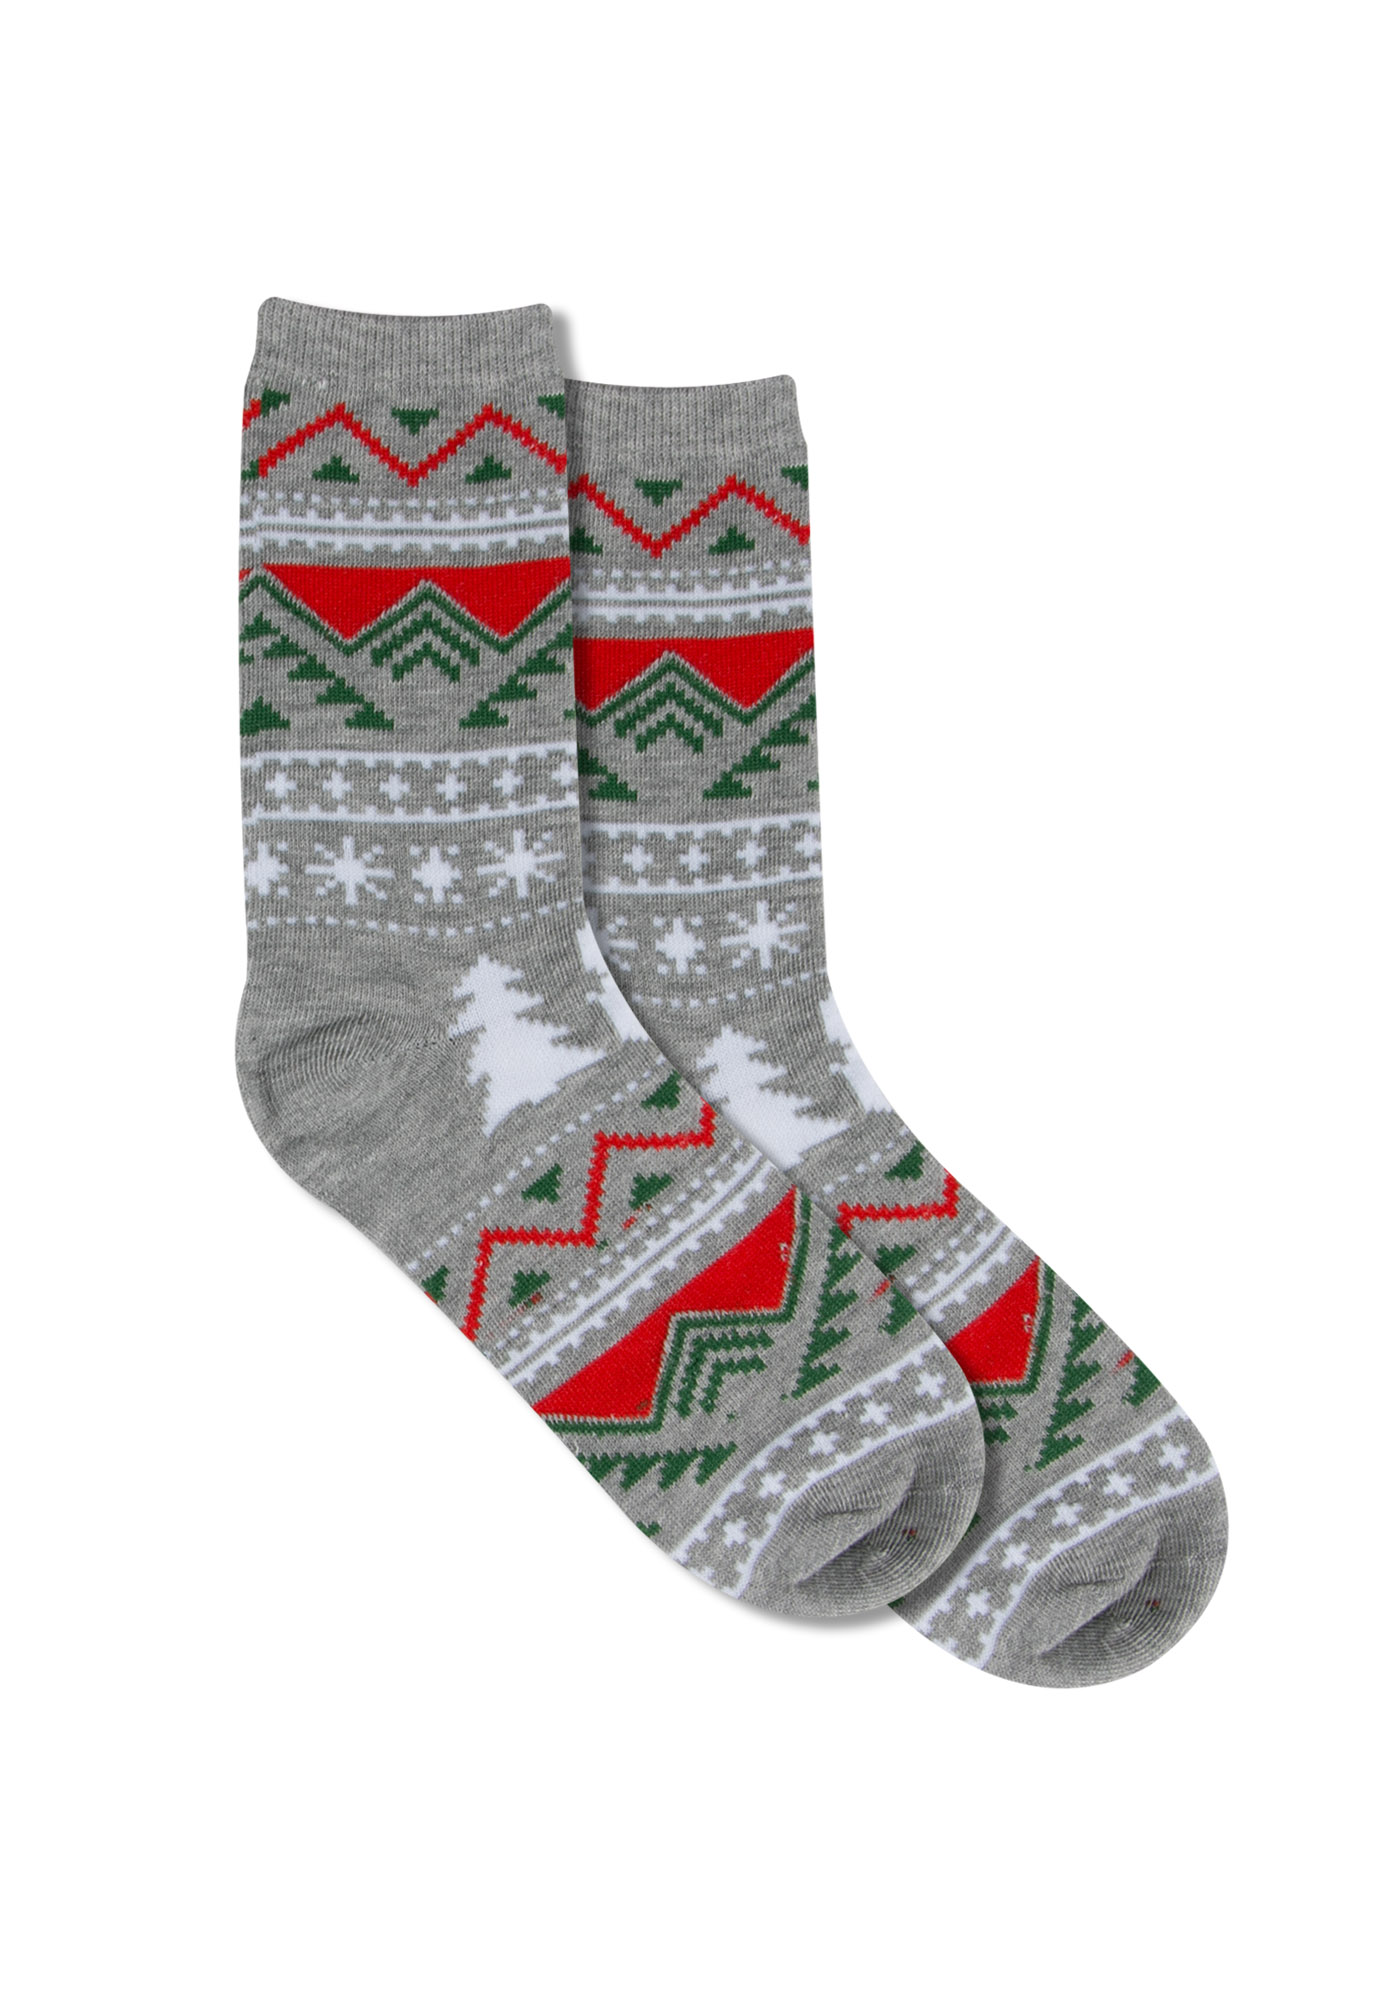 Ladies' Holiday Sweater Ornament Socks, SNOWMAN, hi-res